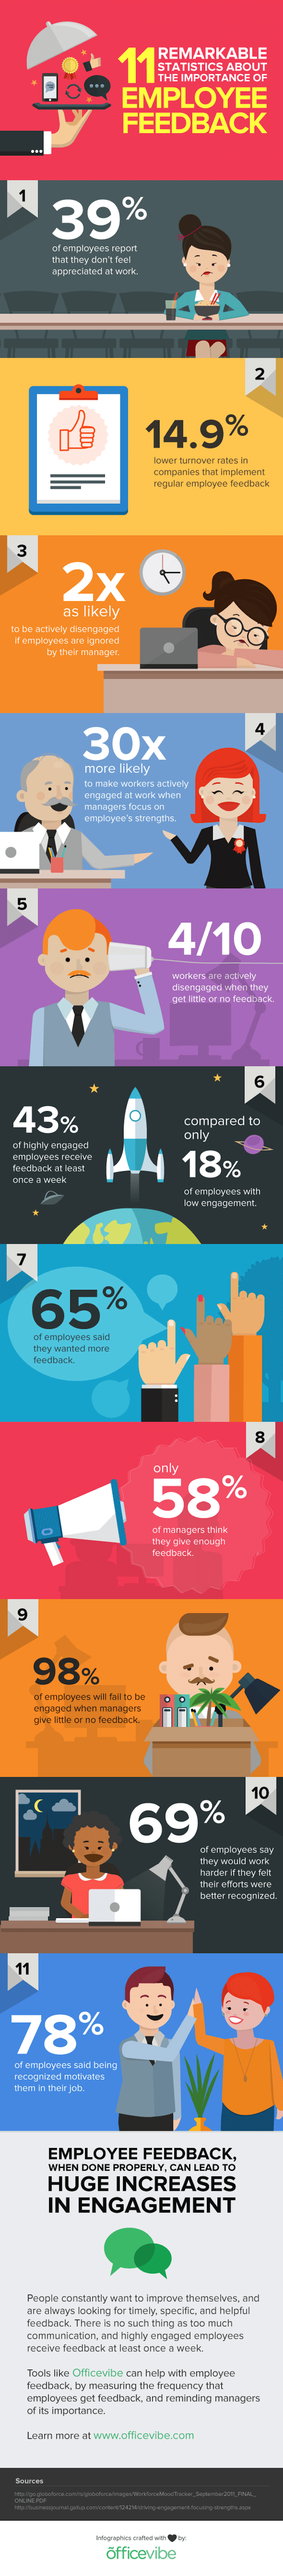 employee-feedback-infographic-1.png